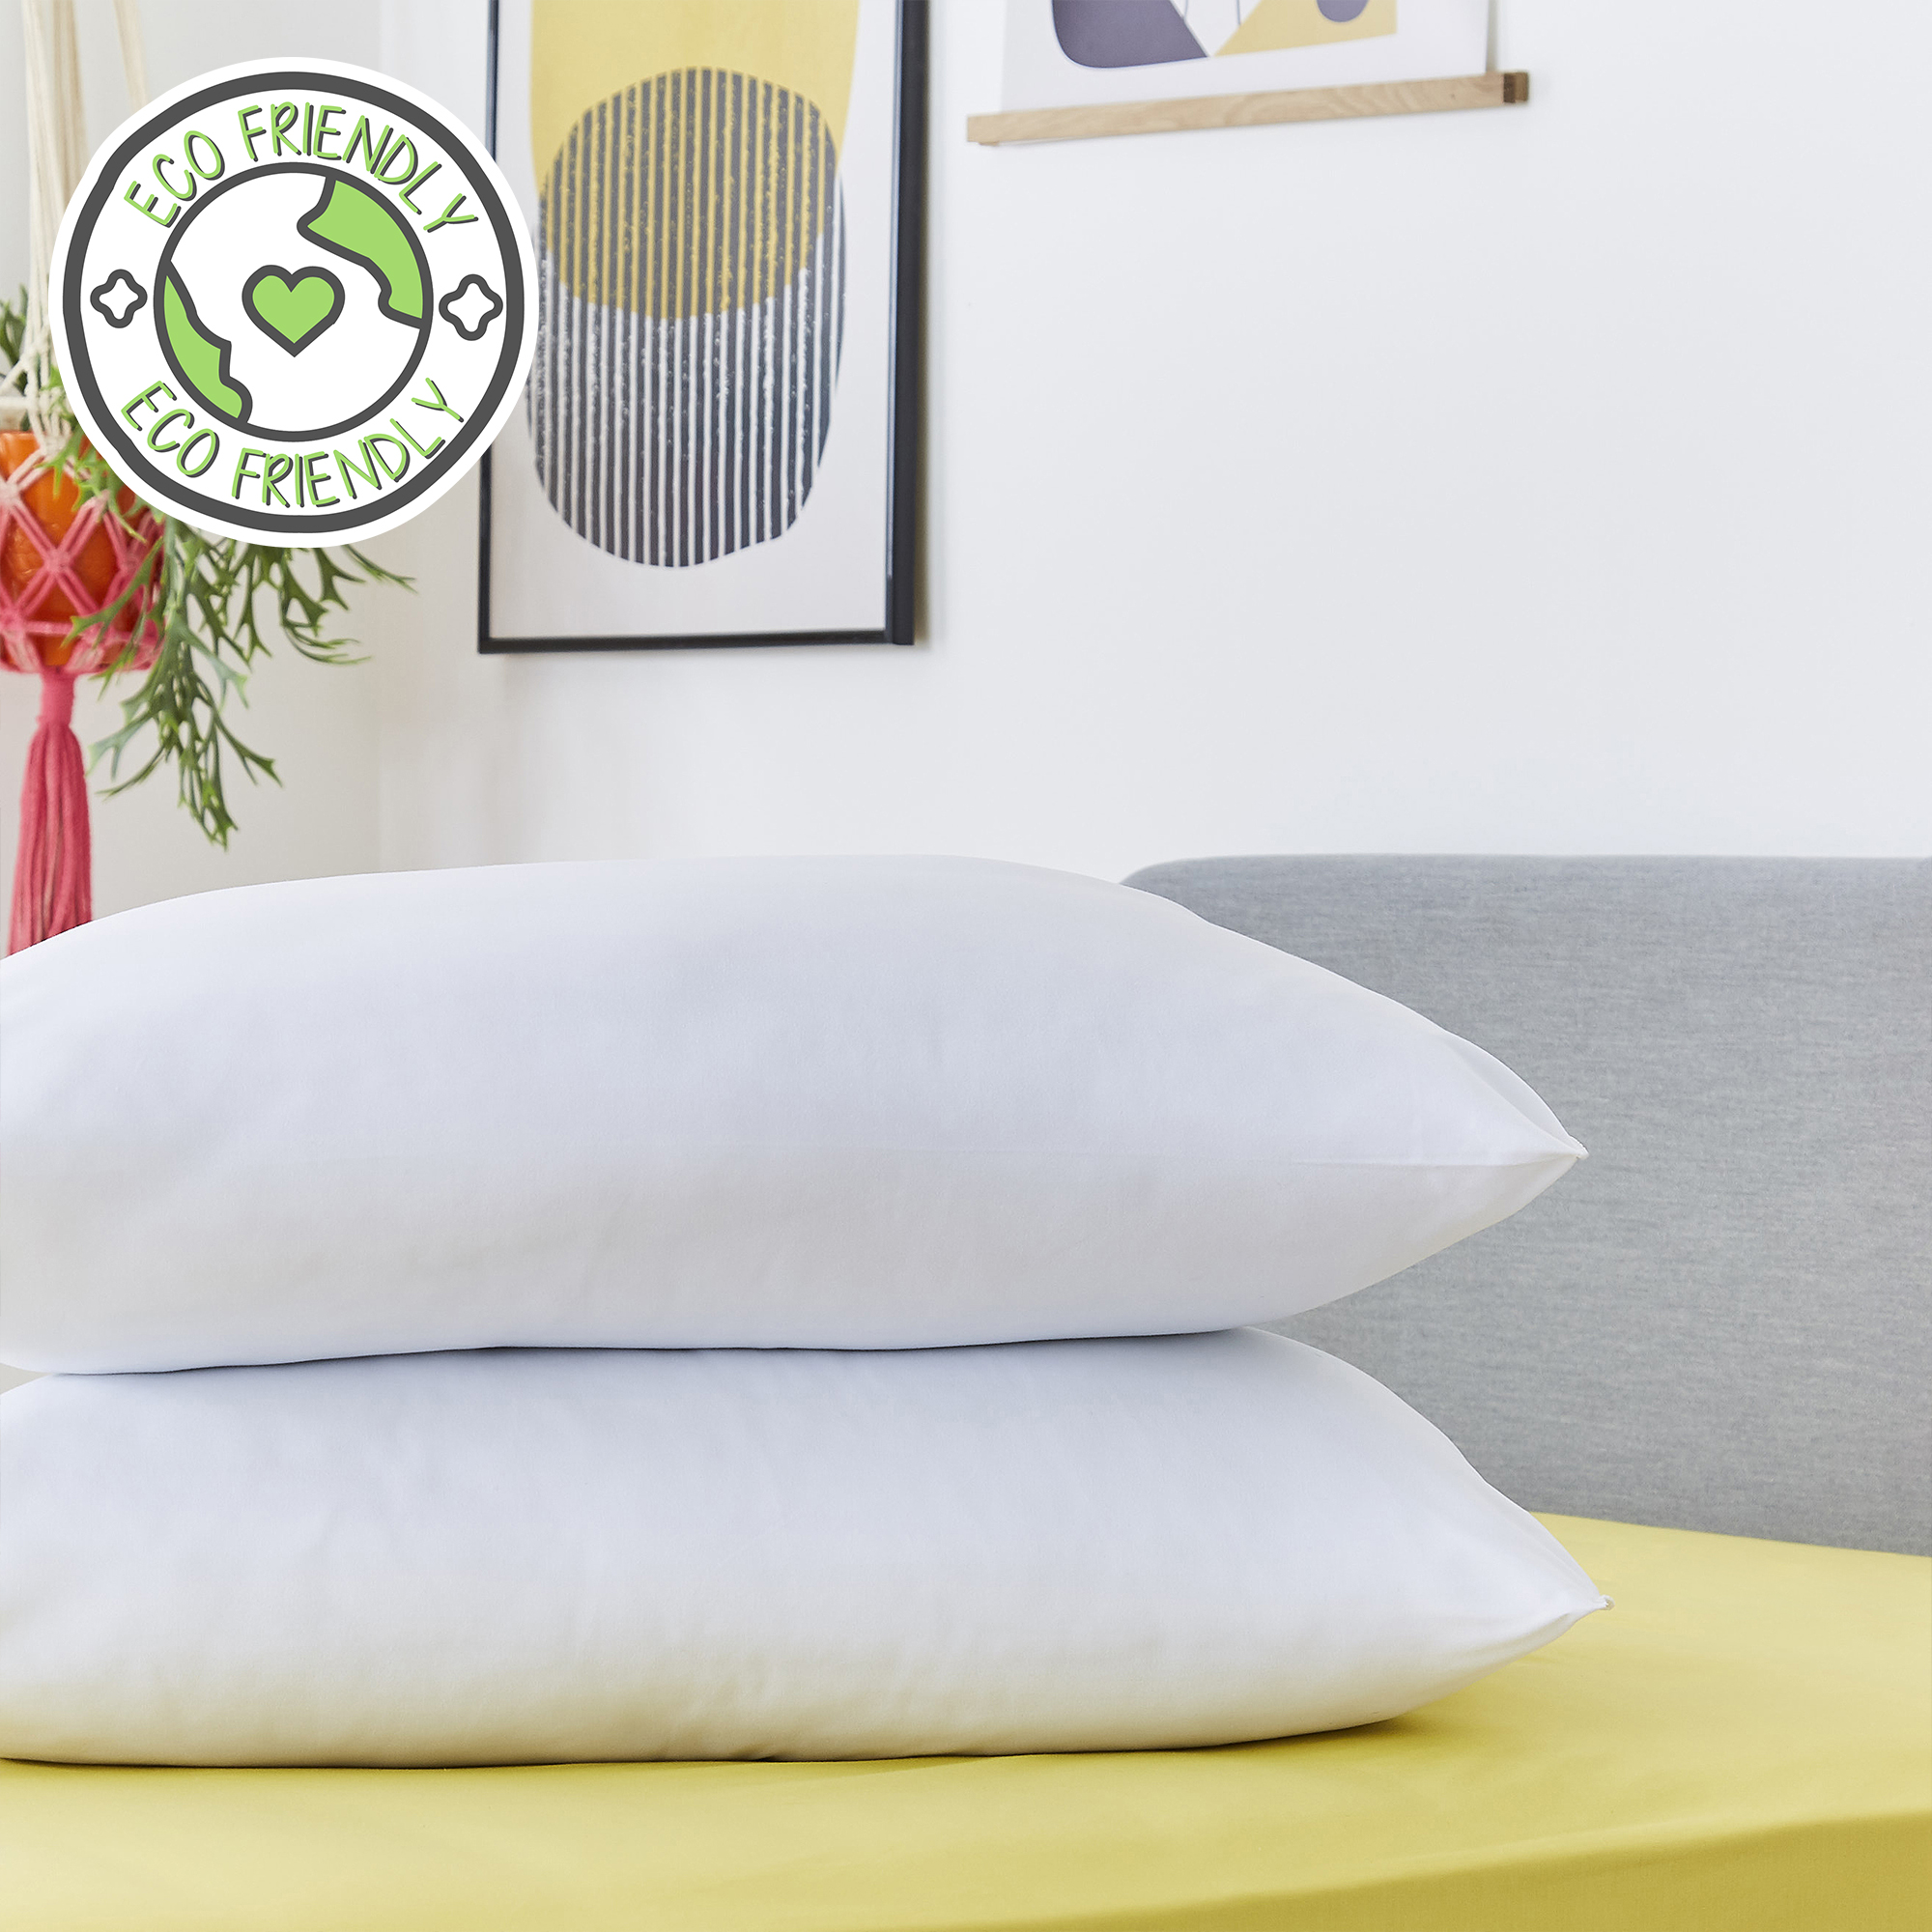 Snug Just Right Pillows – 2 Pack